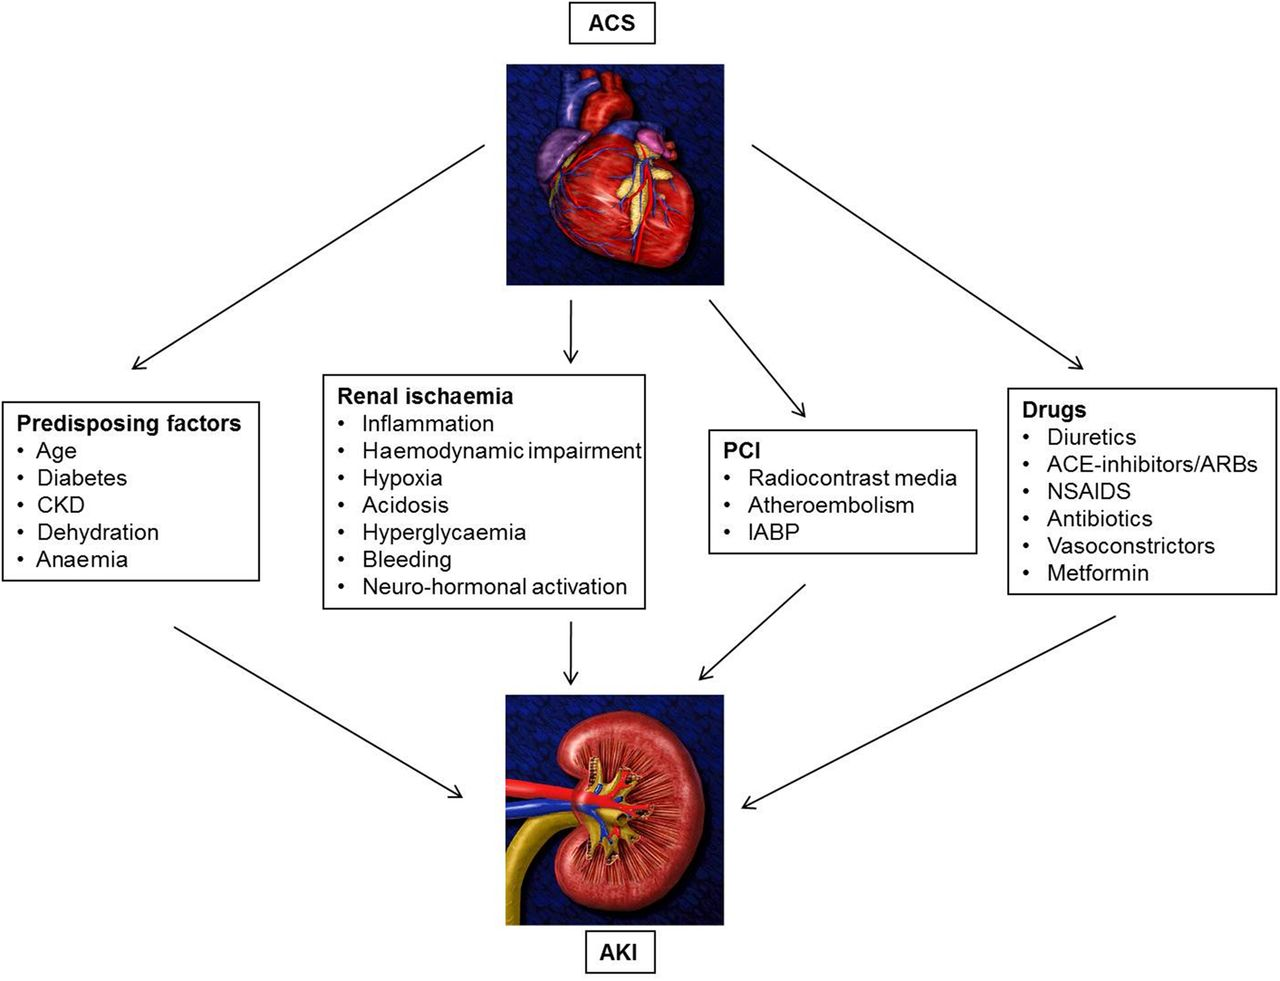 Acute kidney injury in patients with acute coronary syndromes heart download figure open in new tab download powerpoint figure 1 mechanisms possibly involved in the pathophysiology of aki ccuart Choice Image